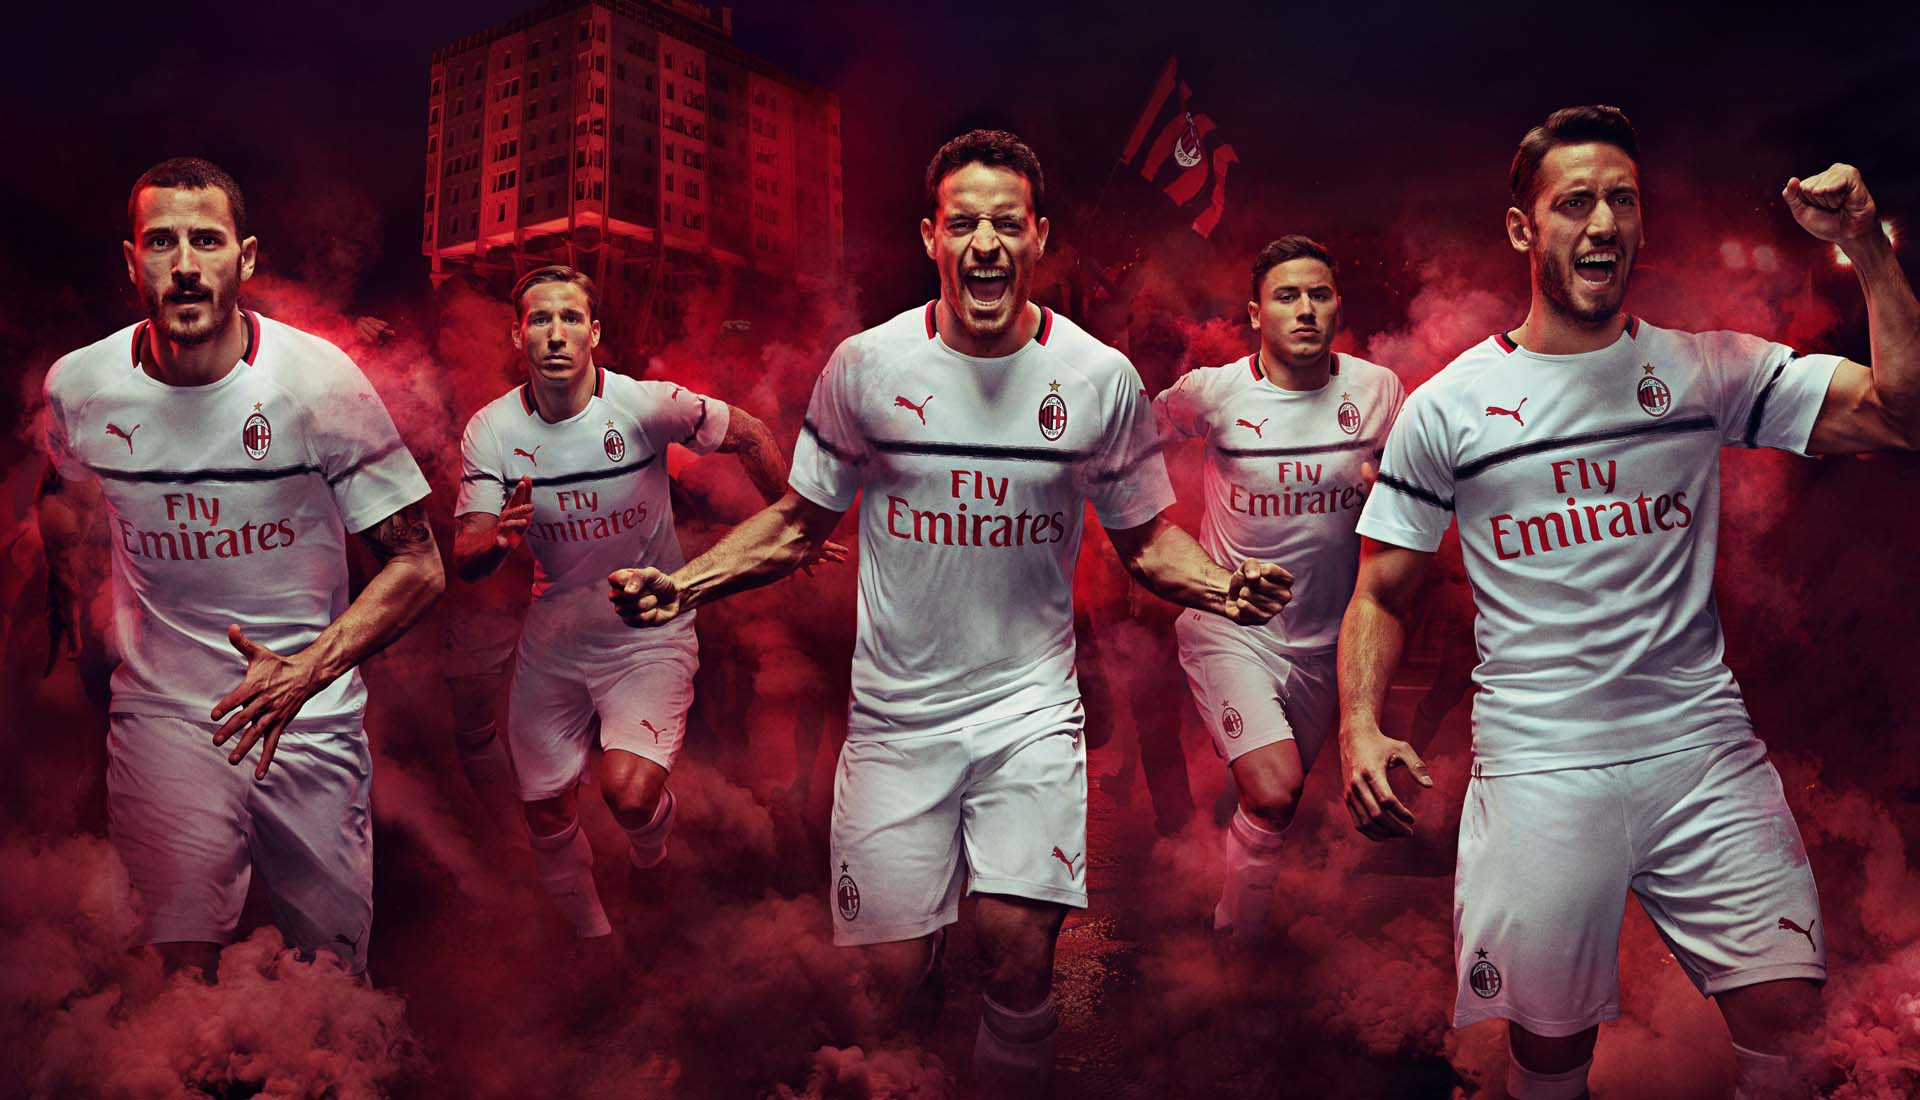 PUMA Launch AC Milan 18/19 Away Shirt - SoccerBible on germany national football team, england national football team, olympique de marseille, borussia dortmund, casa milan, france national football team, zlatan ibrahimovic milan, clarence seedorf, andrea poli milan, sporting clube de portugal, fc bayern munich, balotelli milan, fc barcelona, bayer leverkusen, shevchenko milan, famous people from milan, andrea pirlo, valencia cf, brazil national football team, ronaldinho milan, sevilla fc, iran milan, forza milan, olympique lyonnais, inter milan, shaarawy milan, mario yepes milan, real madrid, serie a, italy national football team, tripadvisor milan, new 2015 milan, uefa champions league,